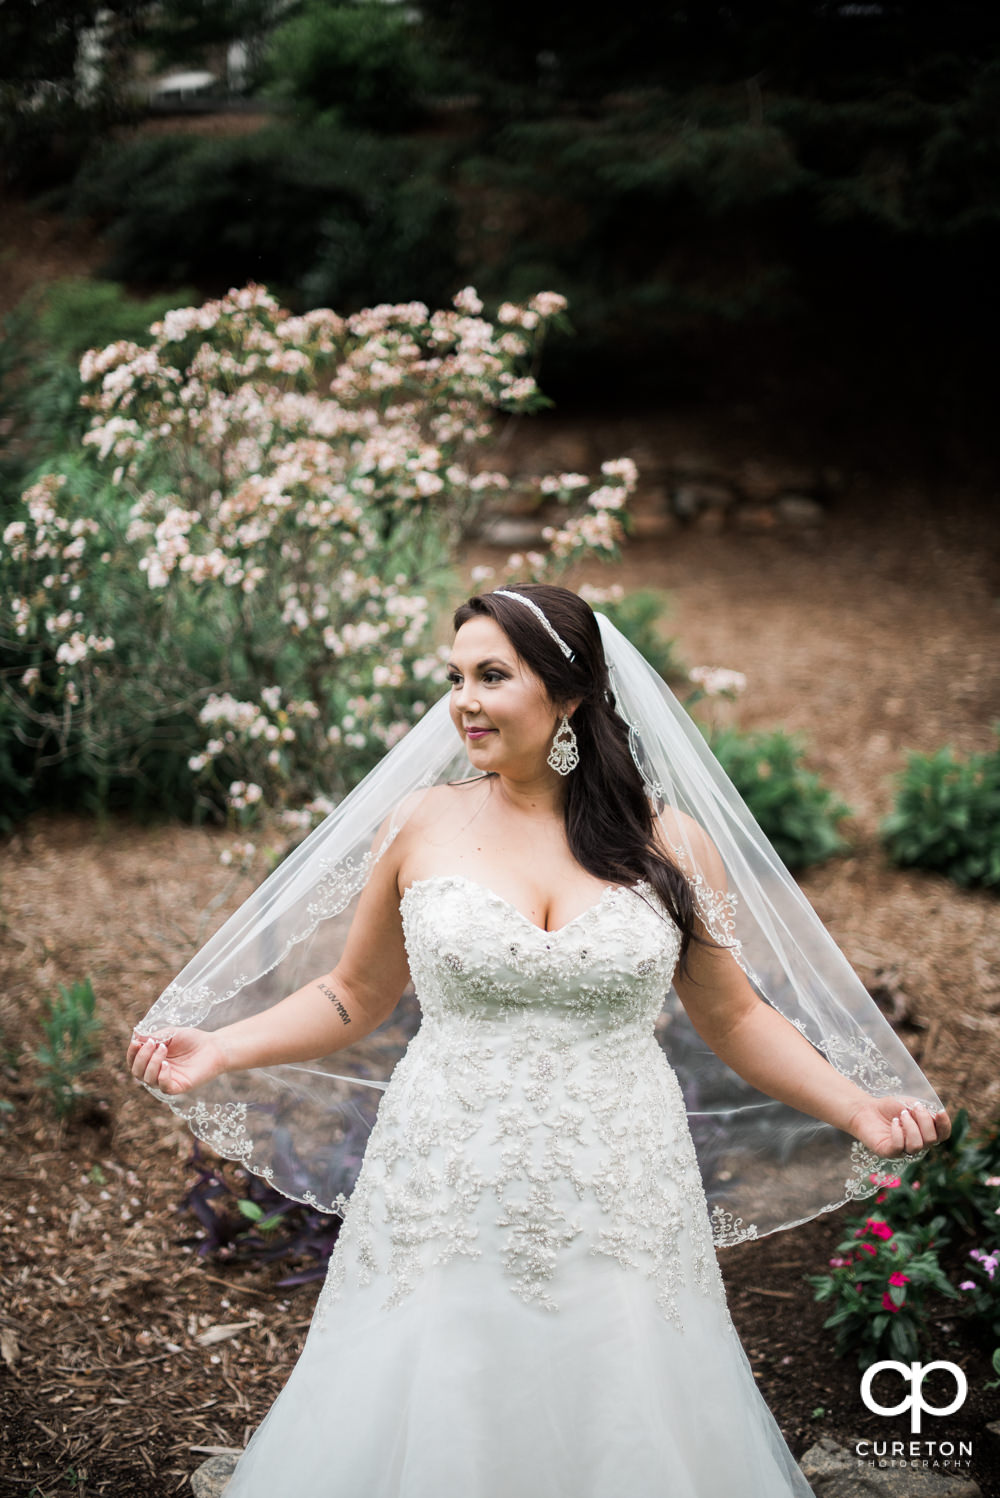 Bride holding her veil out in the wind at her bridal session.